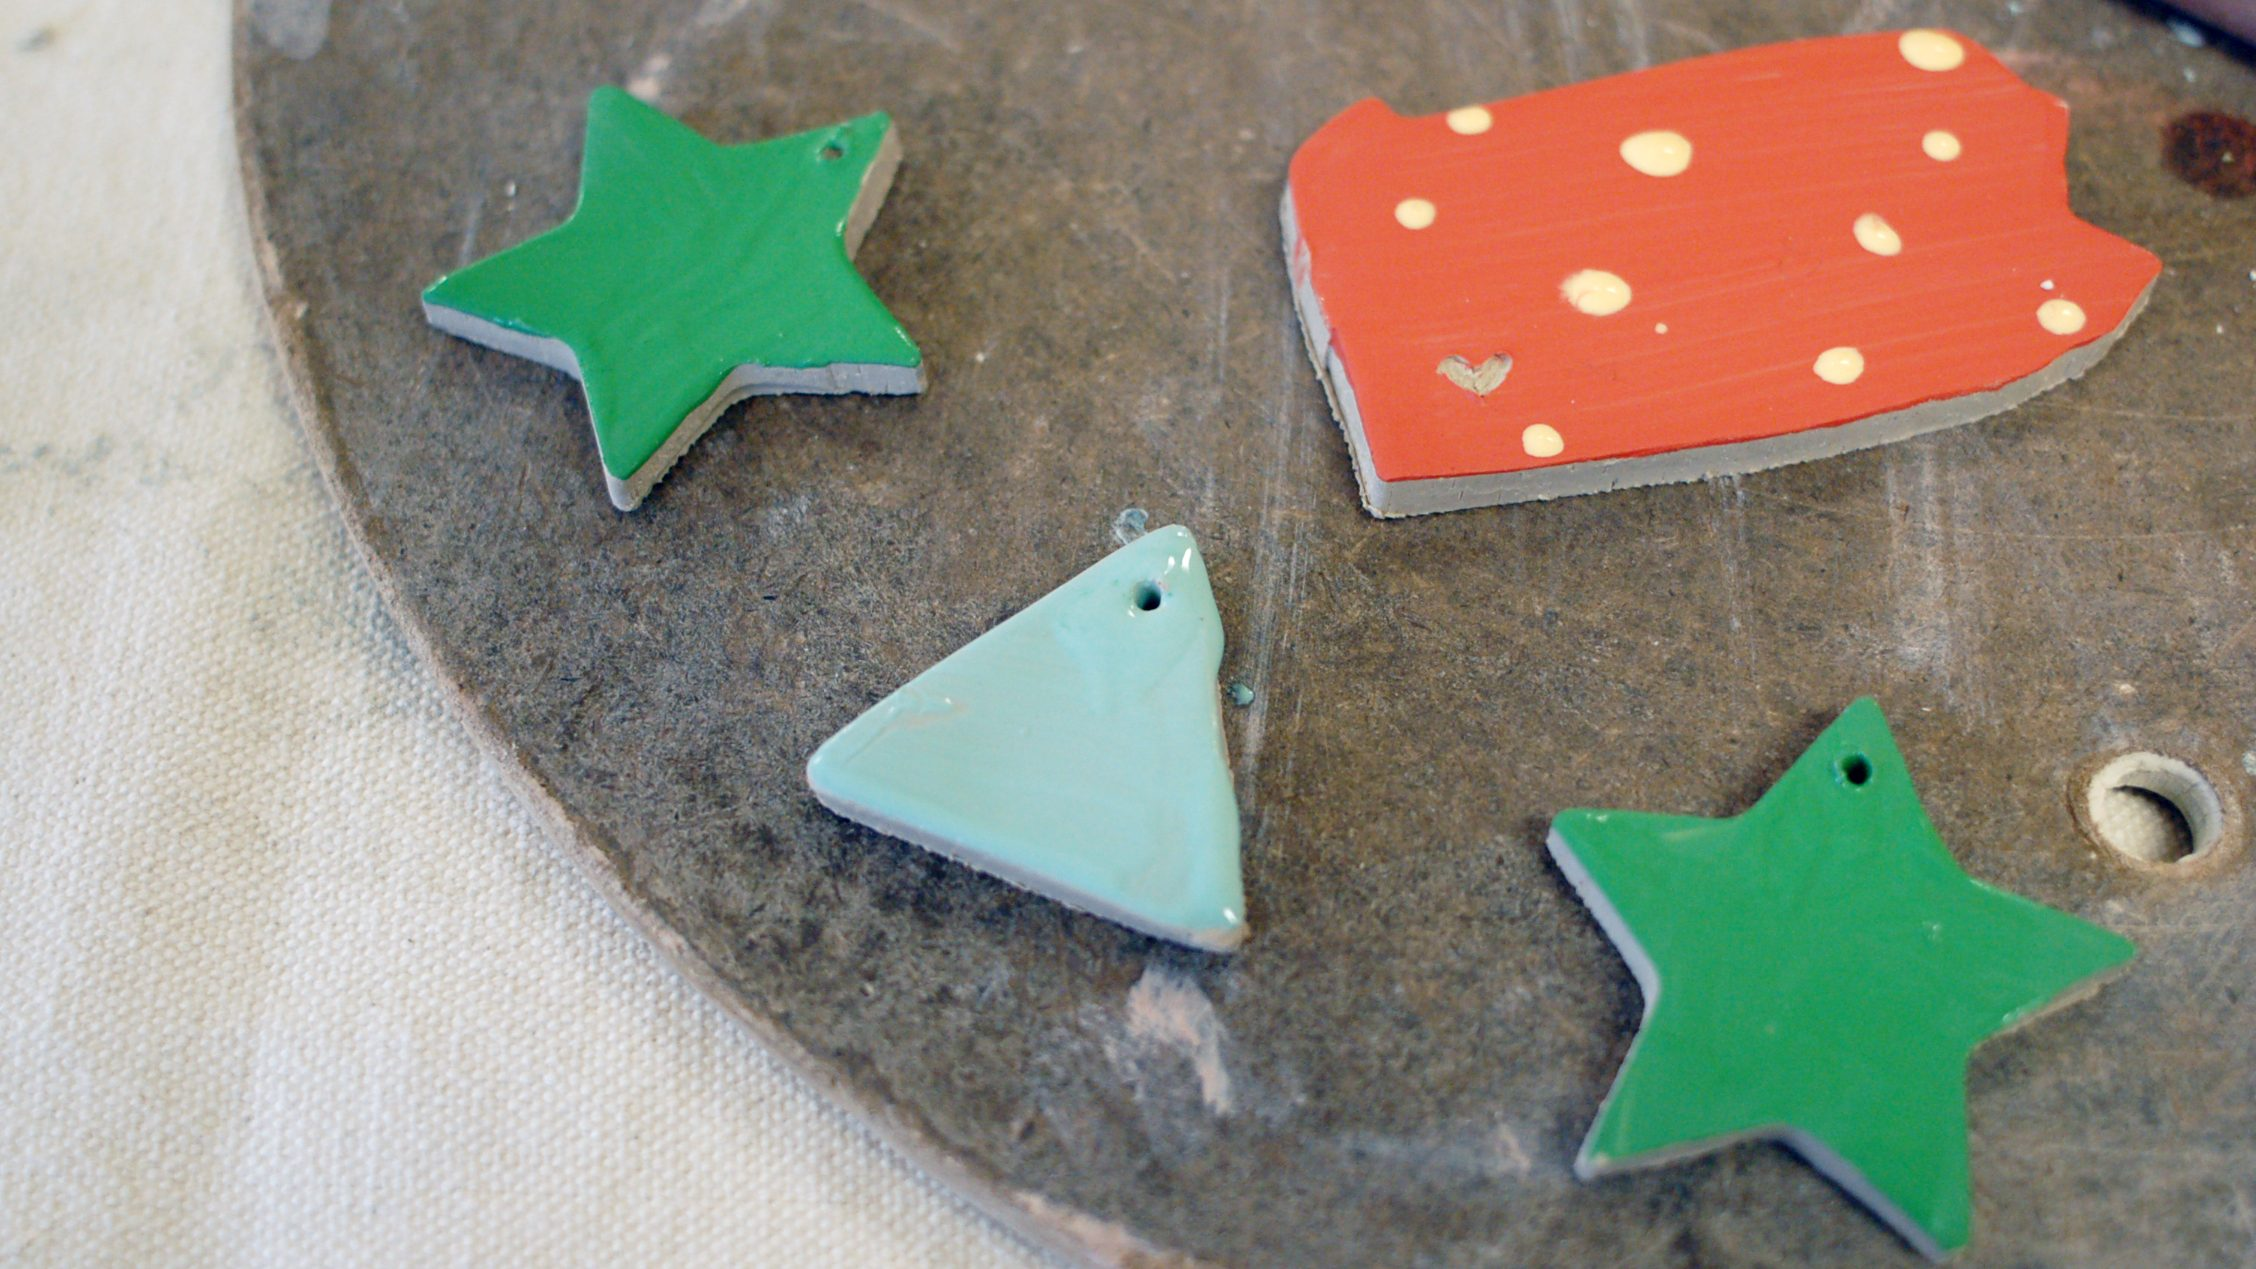 Close-up of four ceramic ornaments in progress: 2 green stars, one blue triangle, and a red with white dots ornament shaped like the state of Pennsylvania.